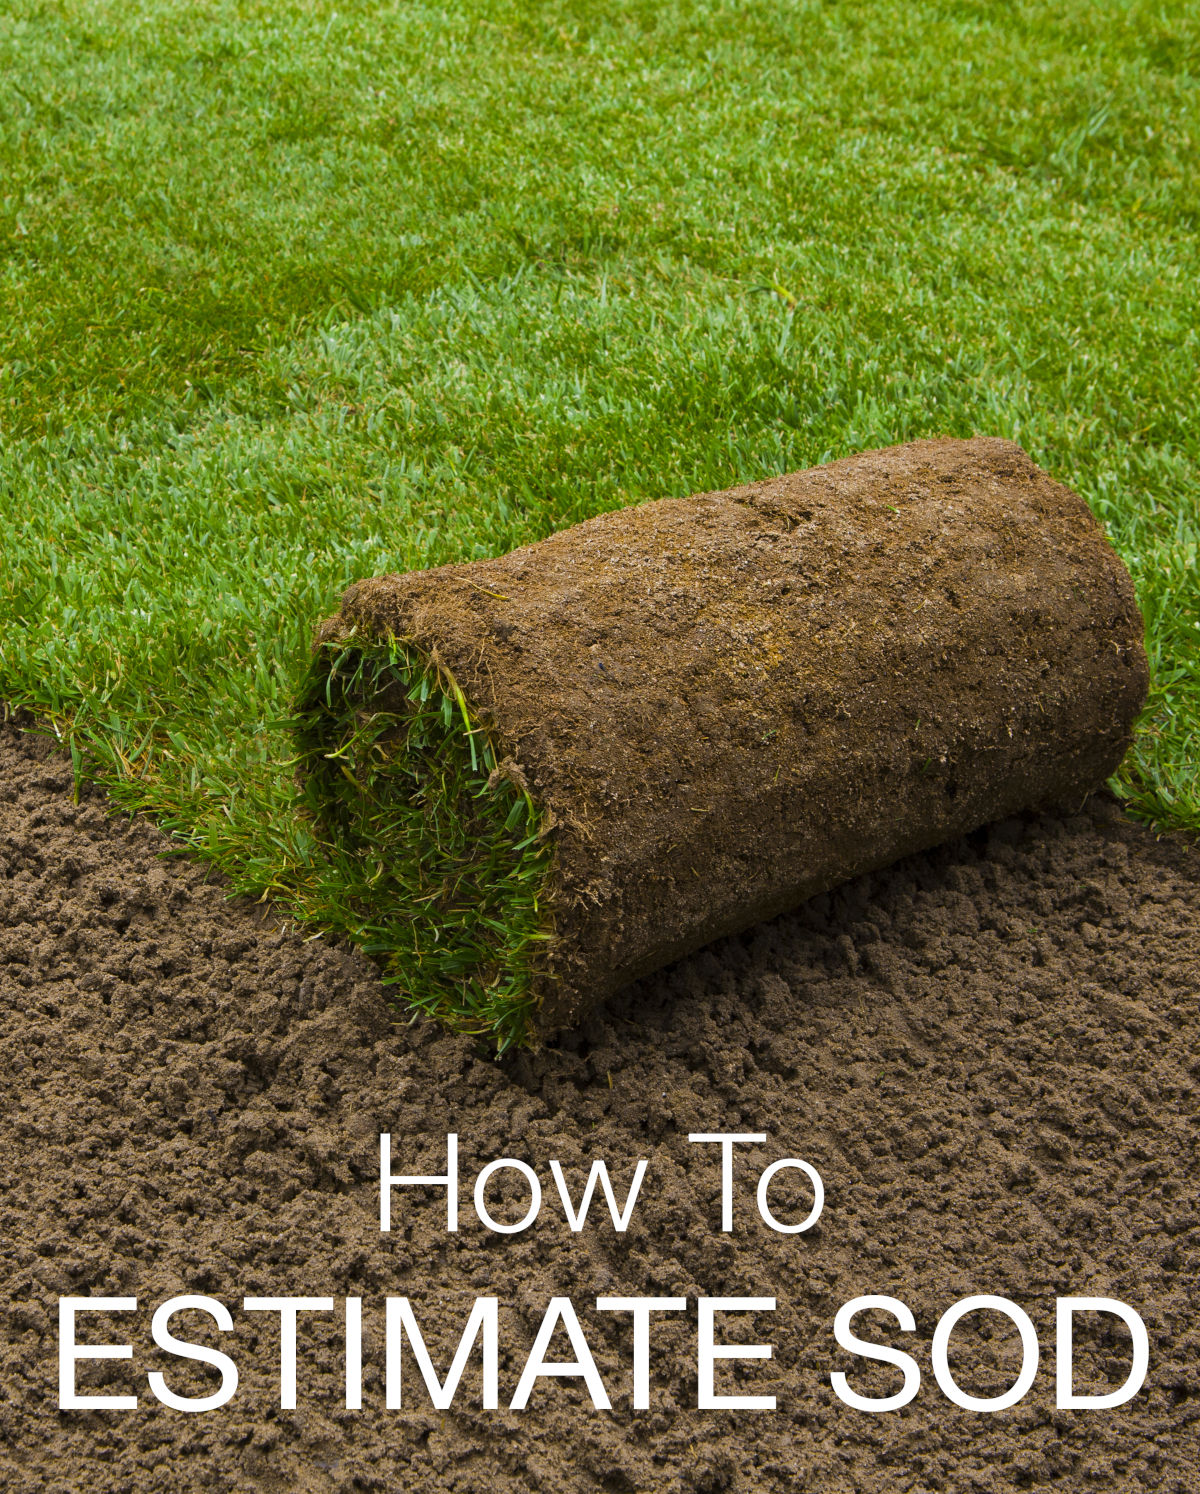 Estimate sod needed to cover a yard using the sod calculator. Find the cost of sod by entering the price per roll.